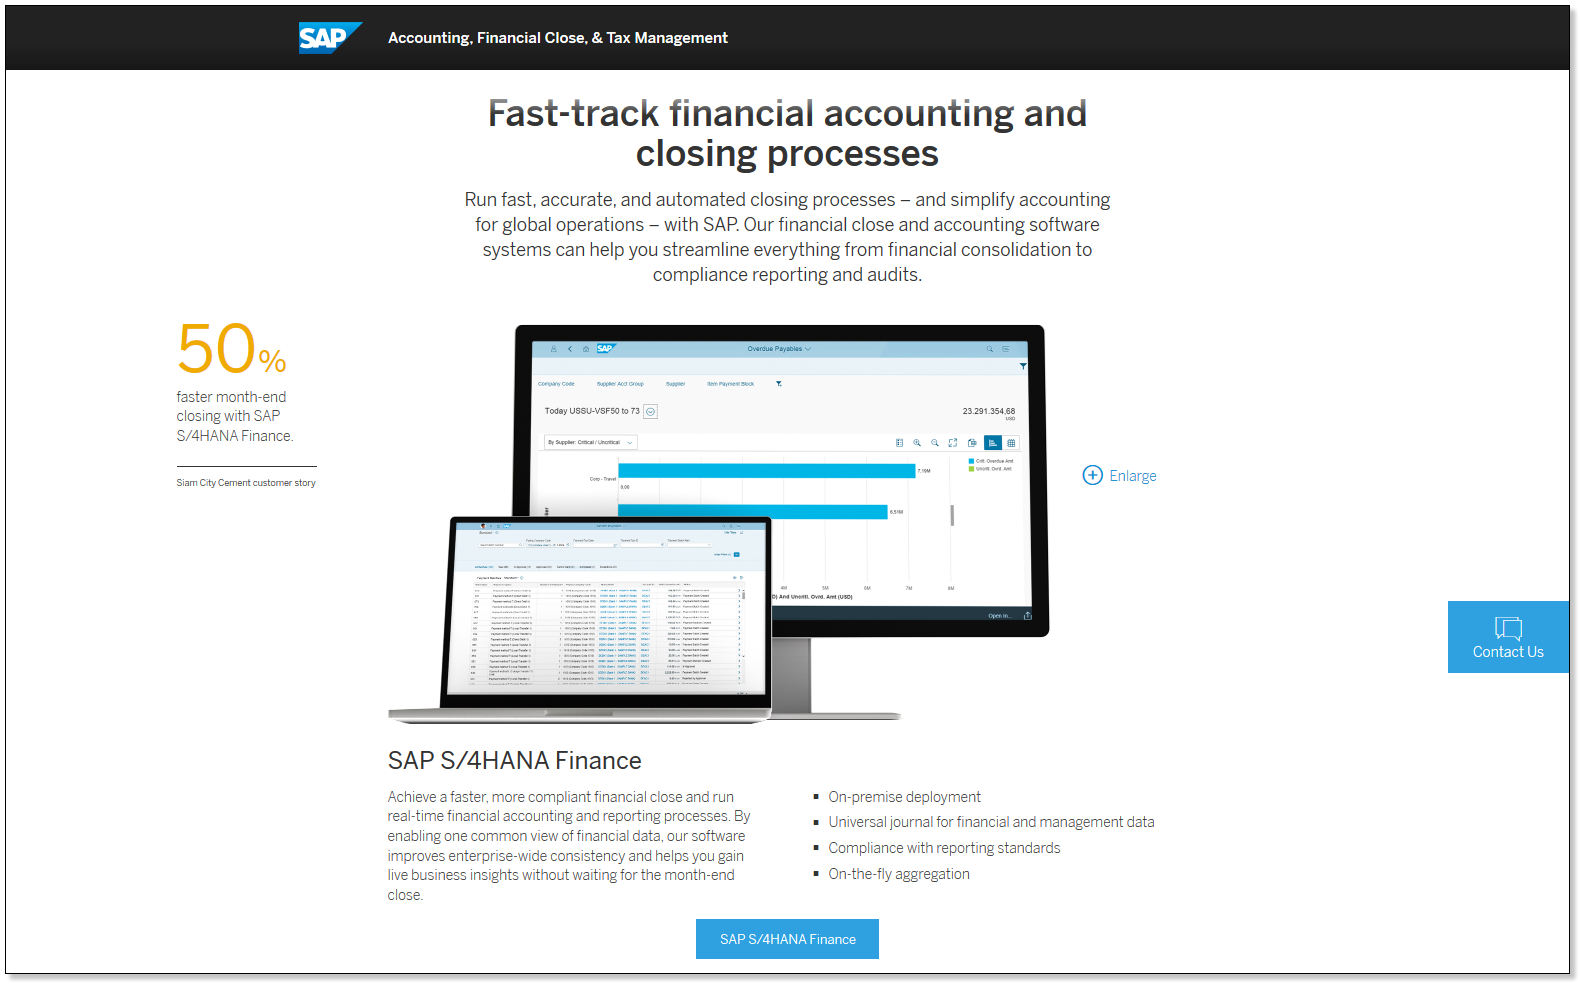 S/4HANA New Asset Accounting (Part 1): Introduction